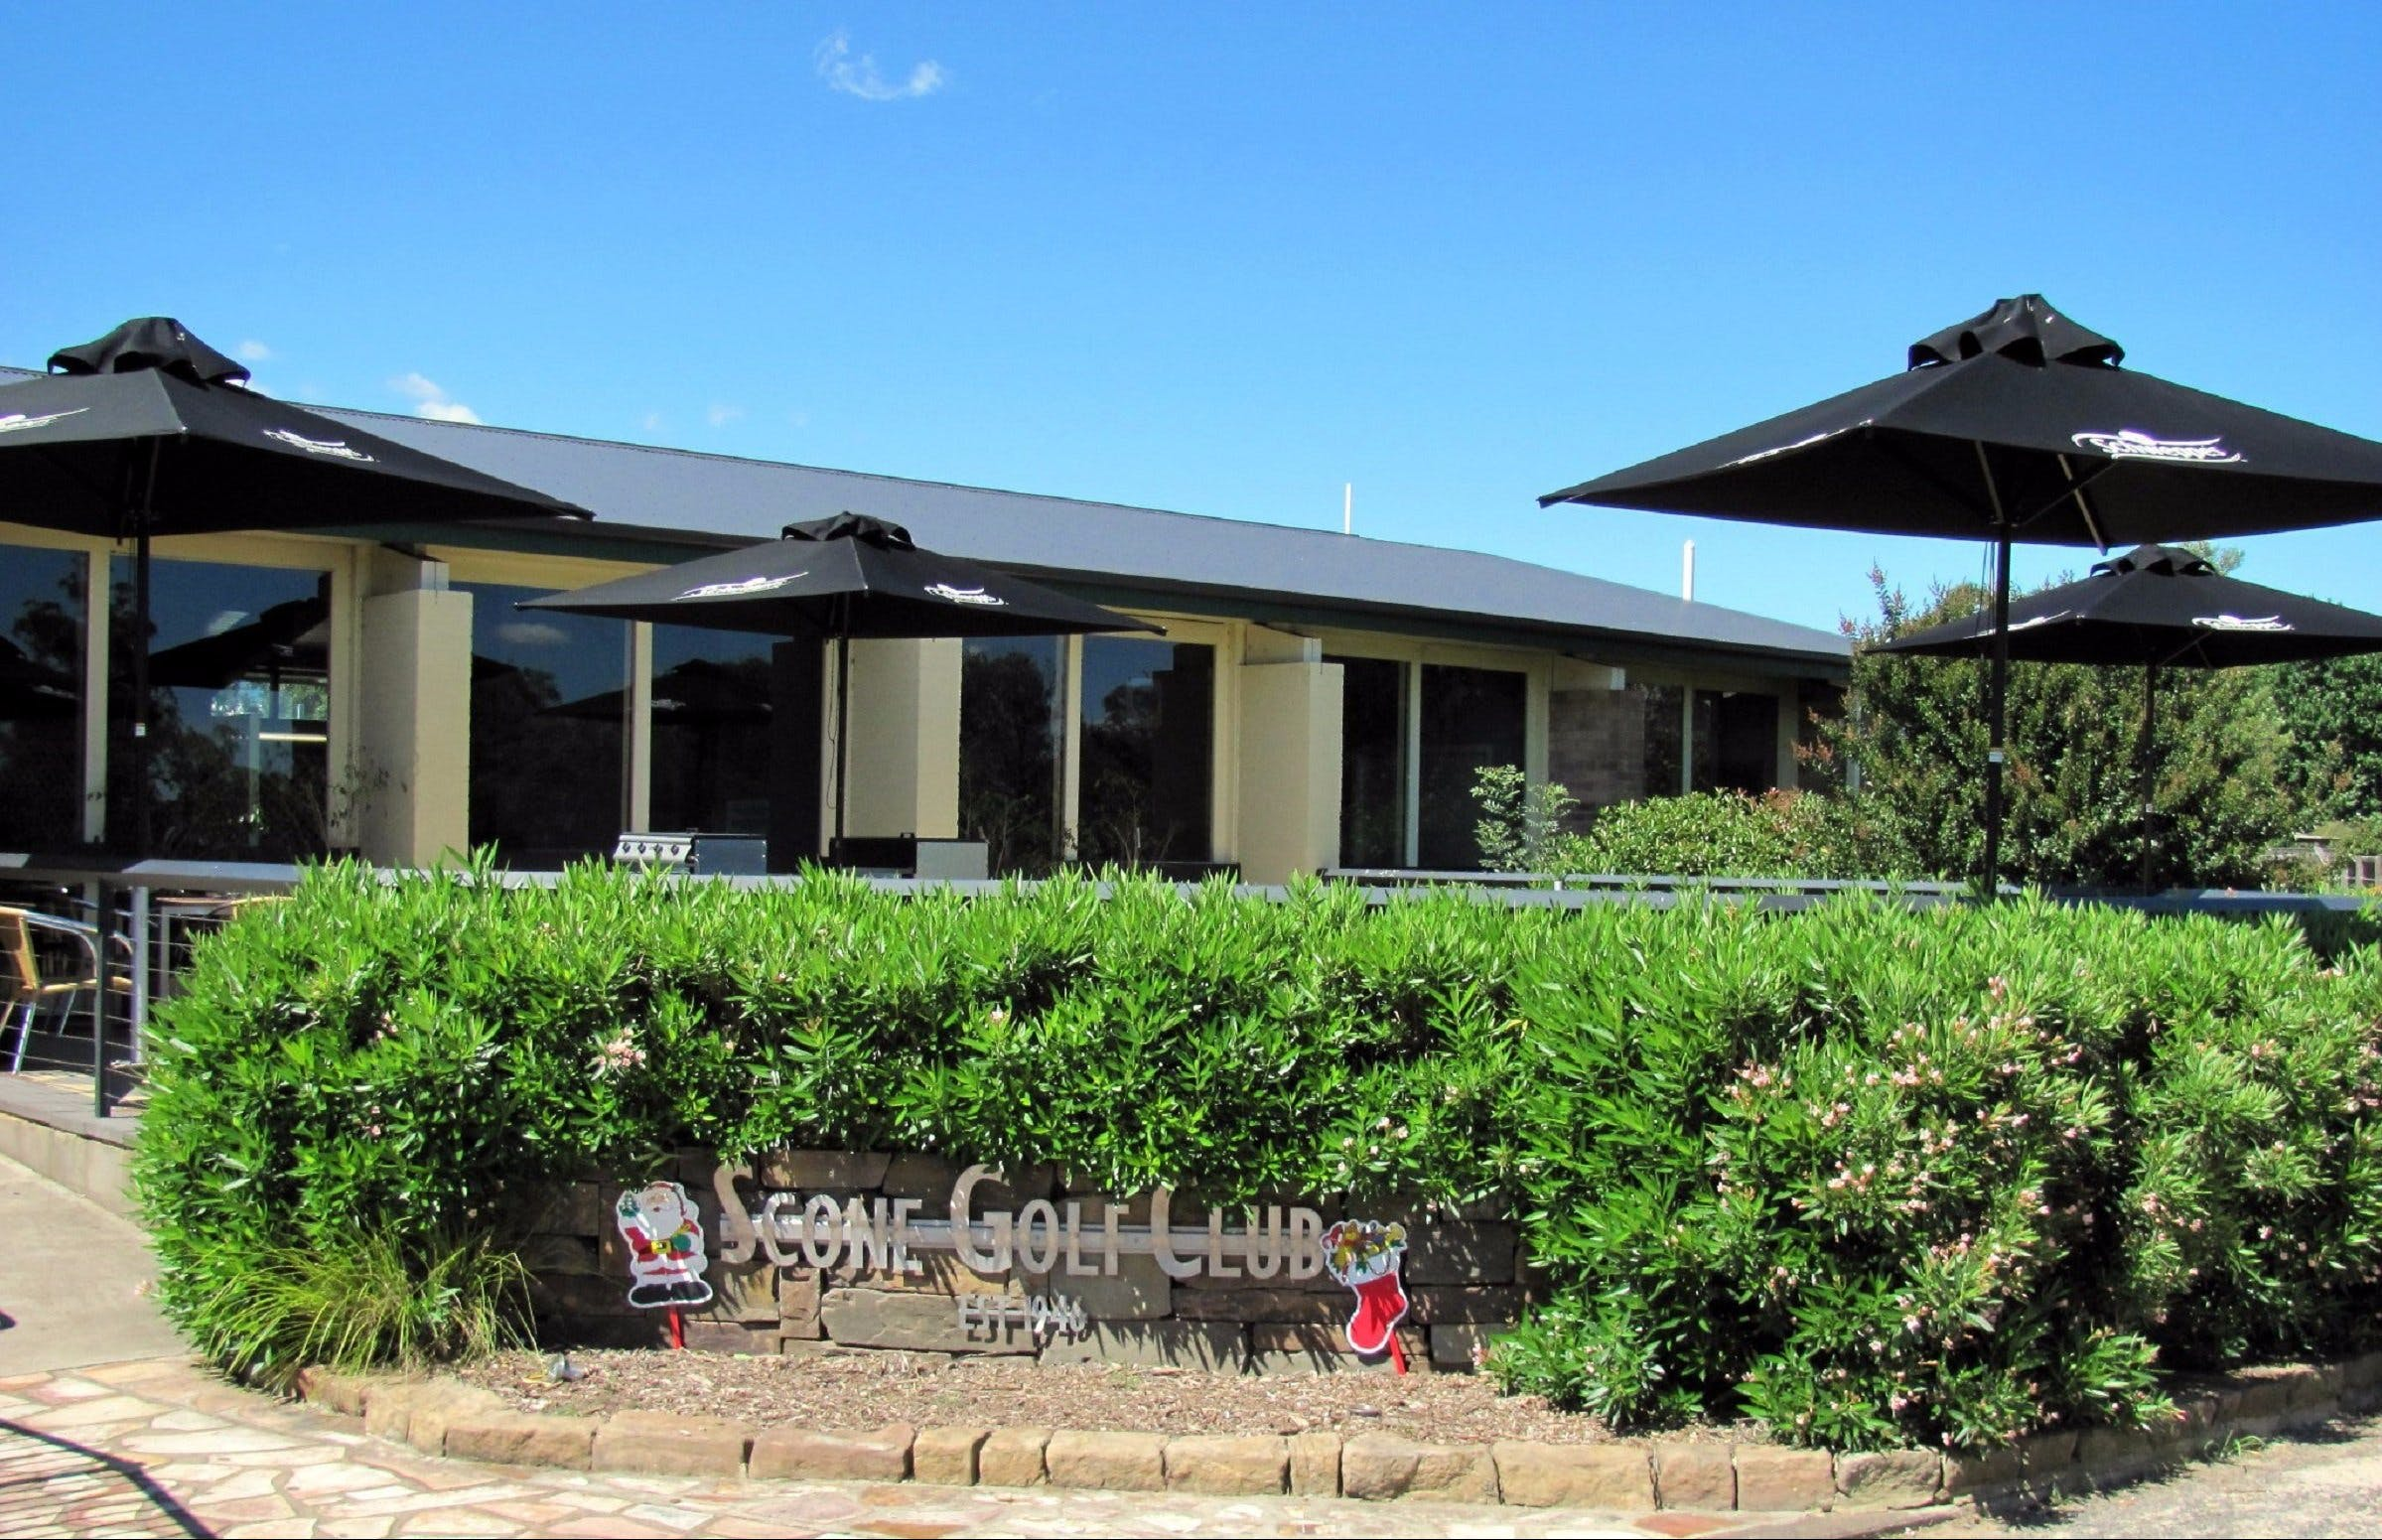 Scone Golf Club - Accommodation Burleigh